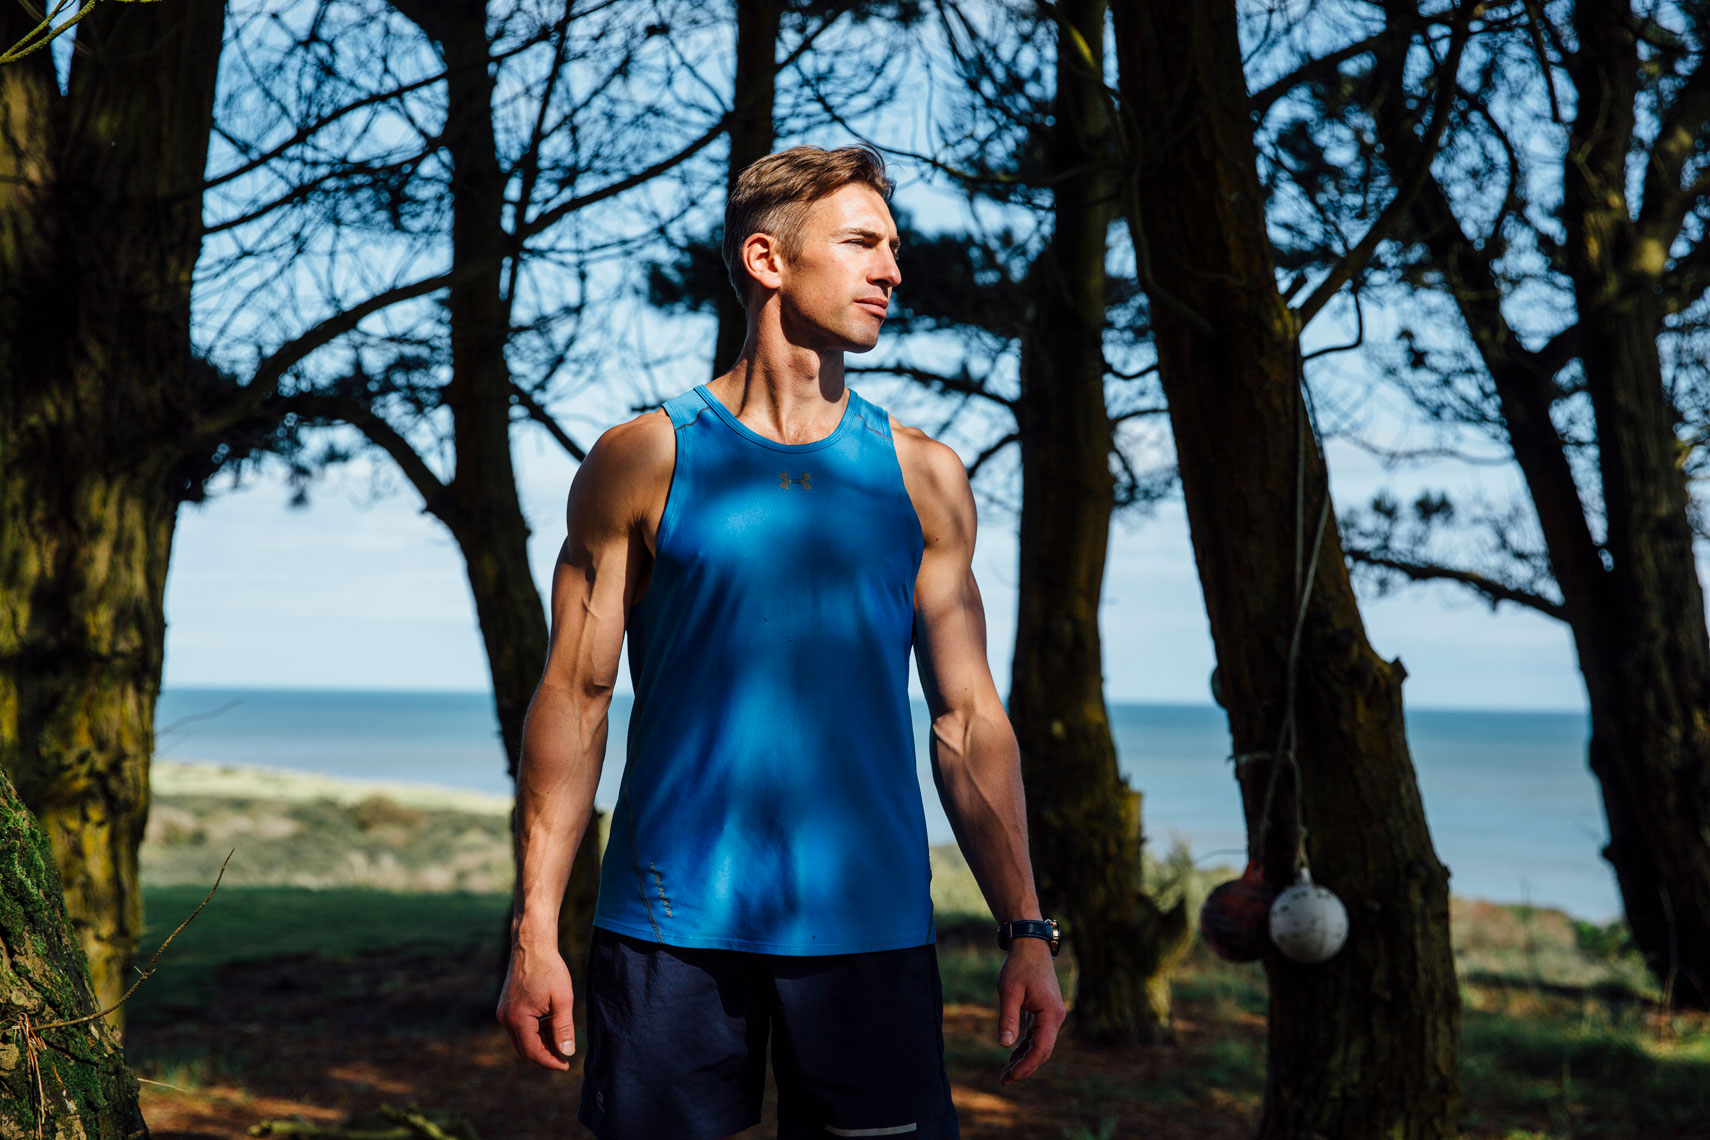 athlete portraits:  getting focussed for training